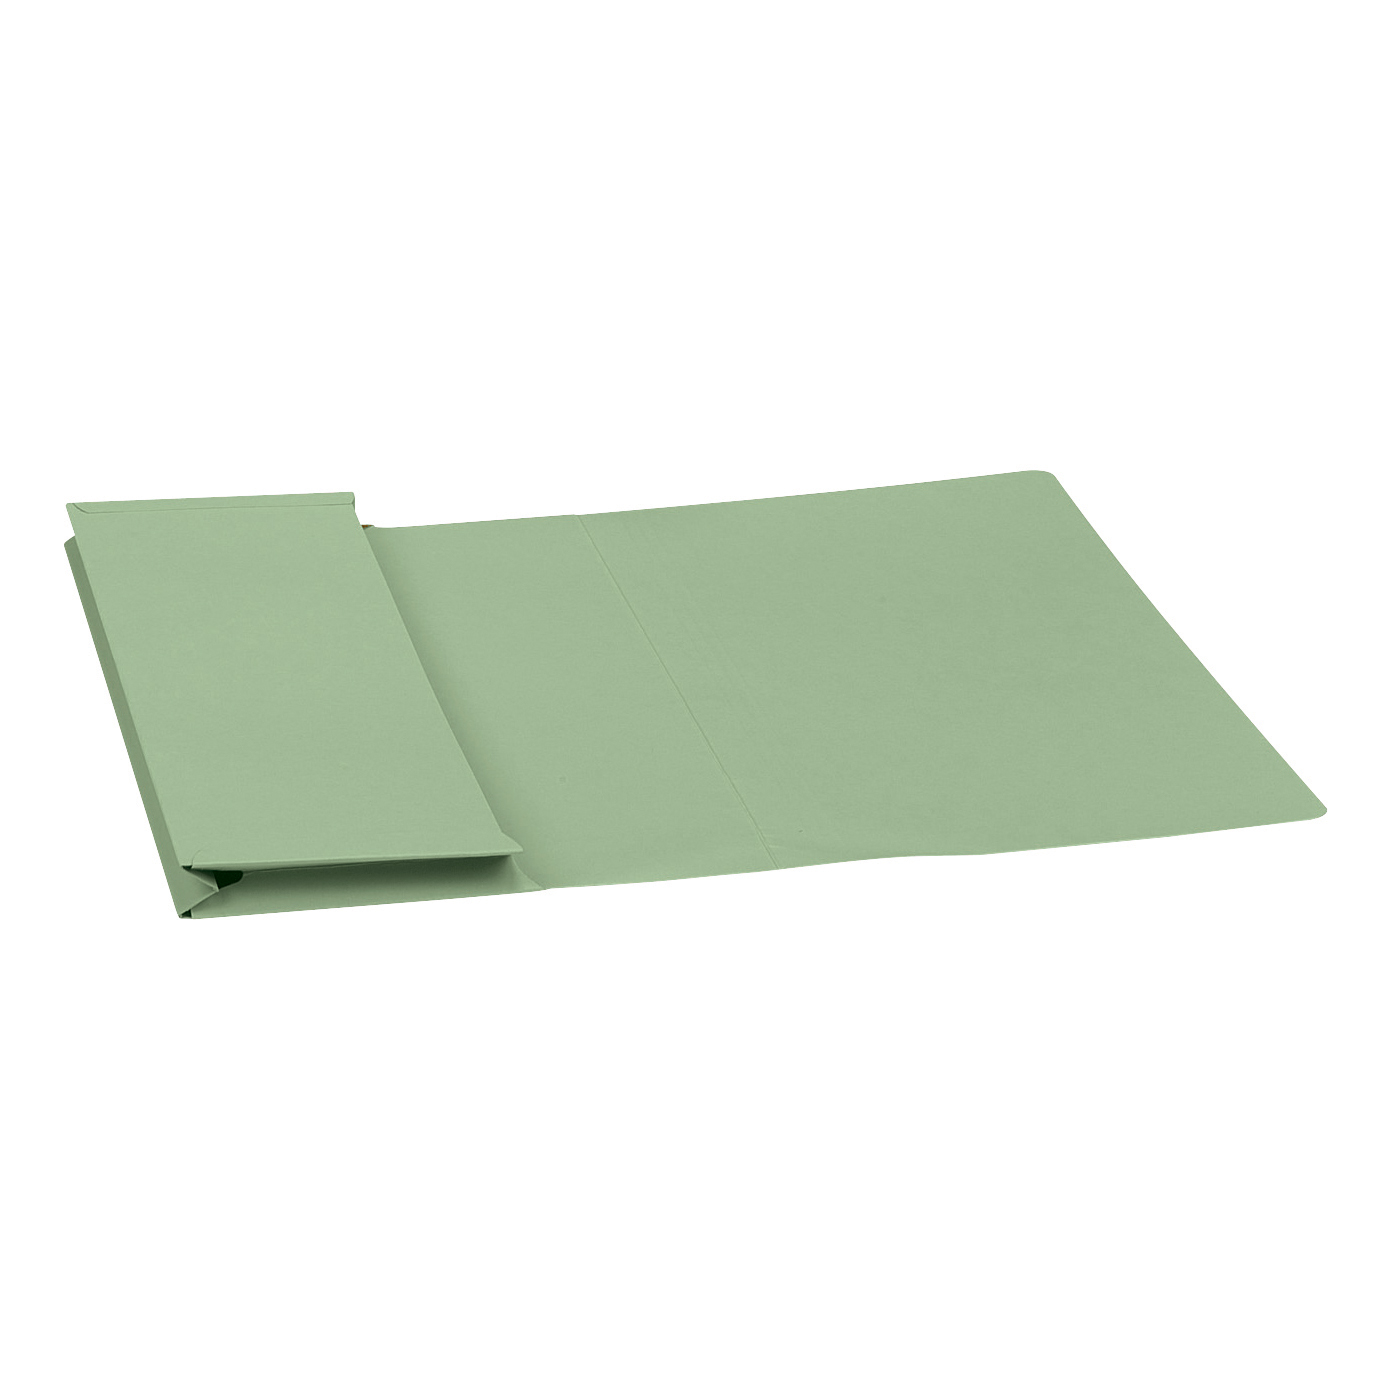 5 Star Elite Document Wallet Full Flap 315gsm Capacity 35mm Foolscap Green Pack 50